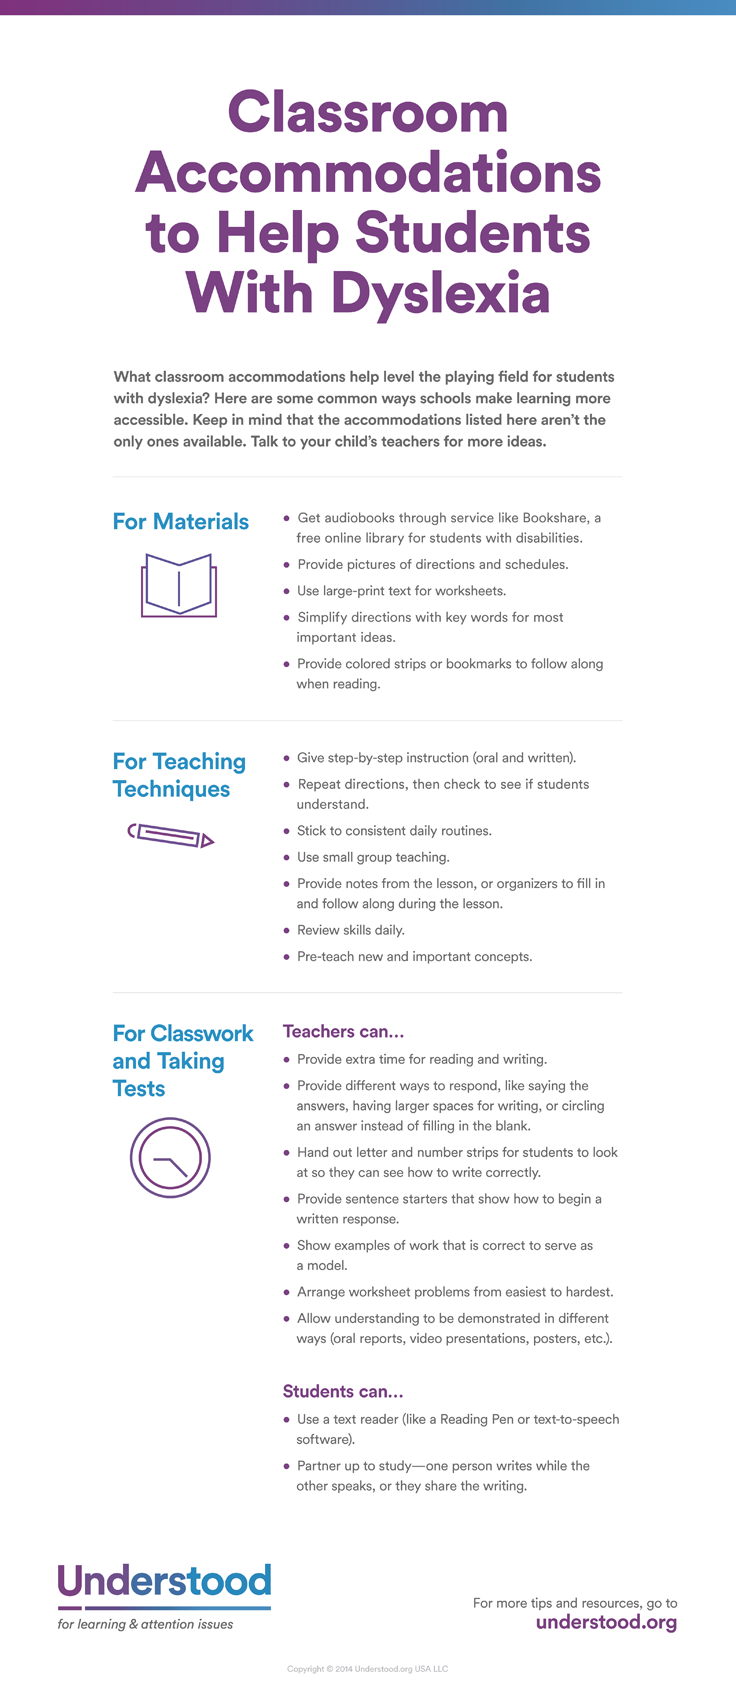 Dyslexia Symptoms Causes And Treatment Understood Org >> At A Glance Classroom Accommodations For Dyslexia